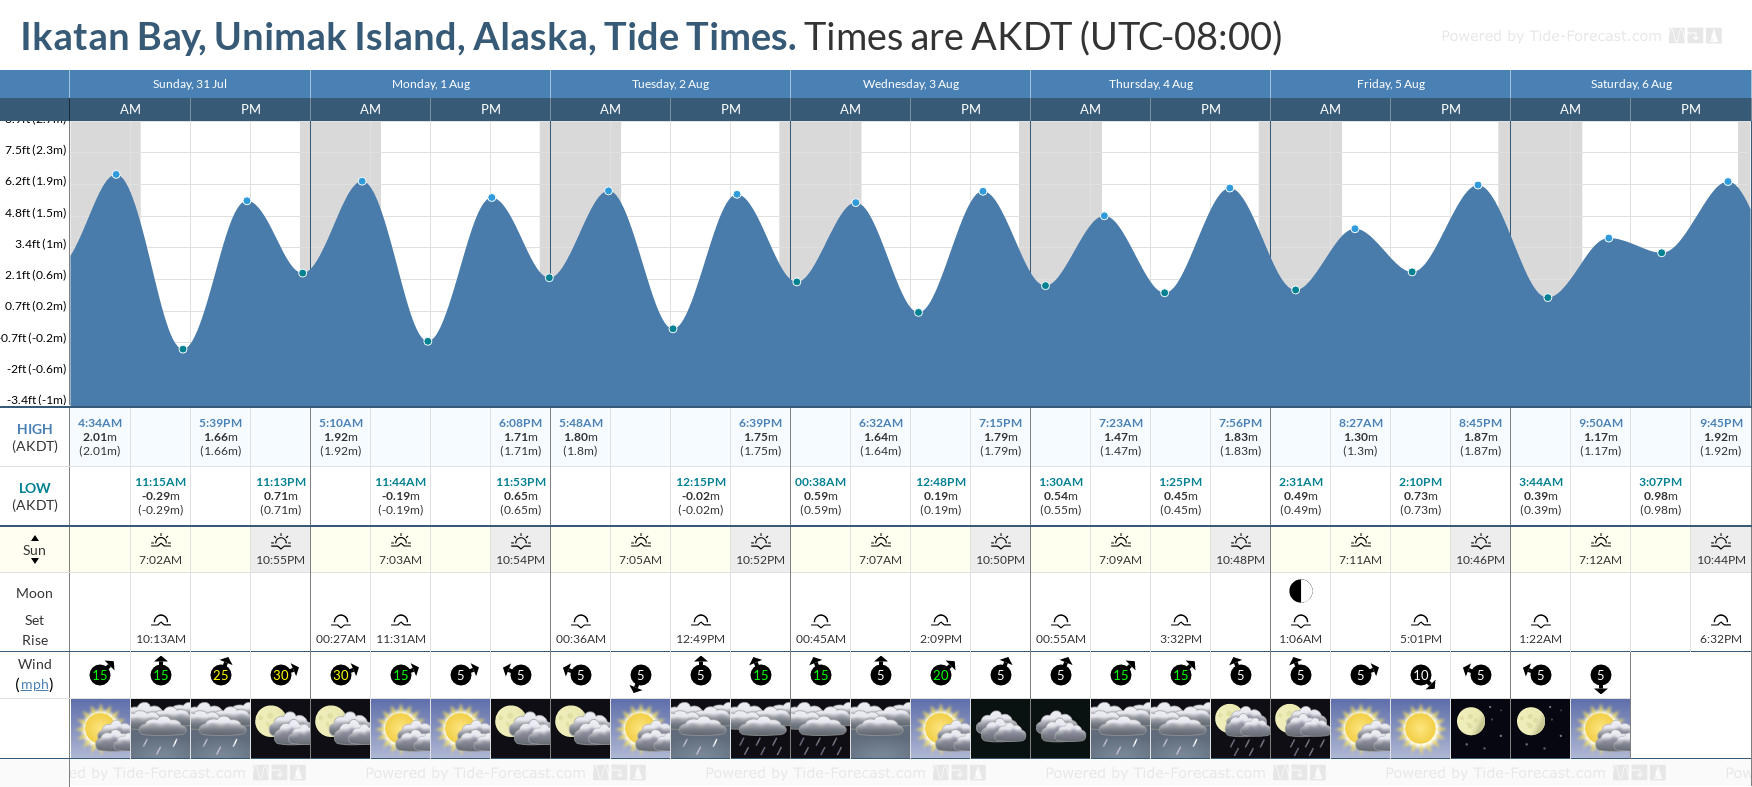 Ikatan Bay, Unimak Island, Alaska Tide Chart including high and low tide tide times for the next 7 days